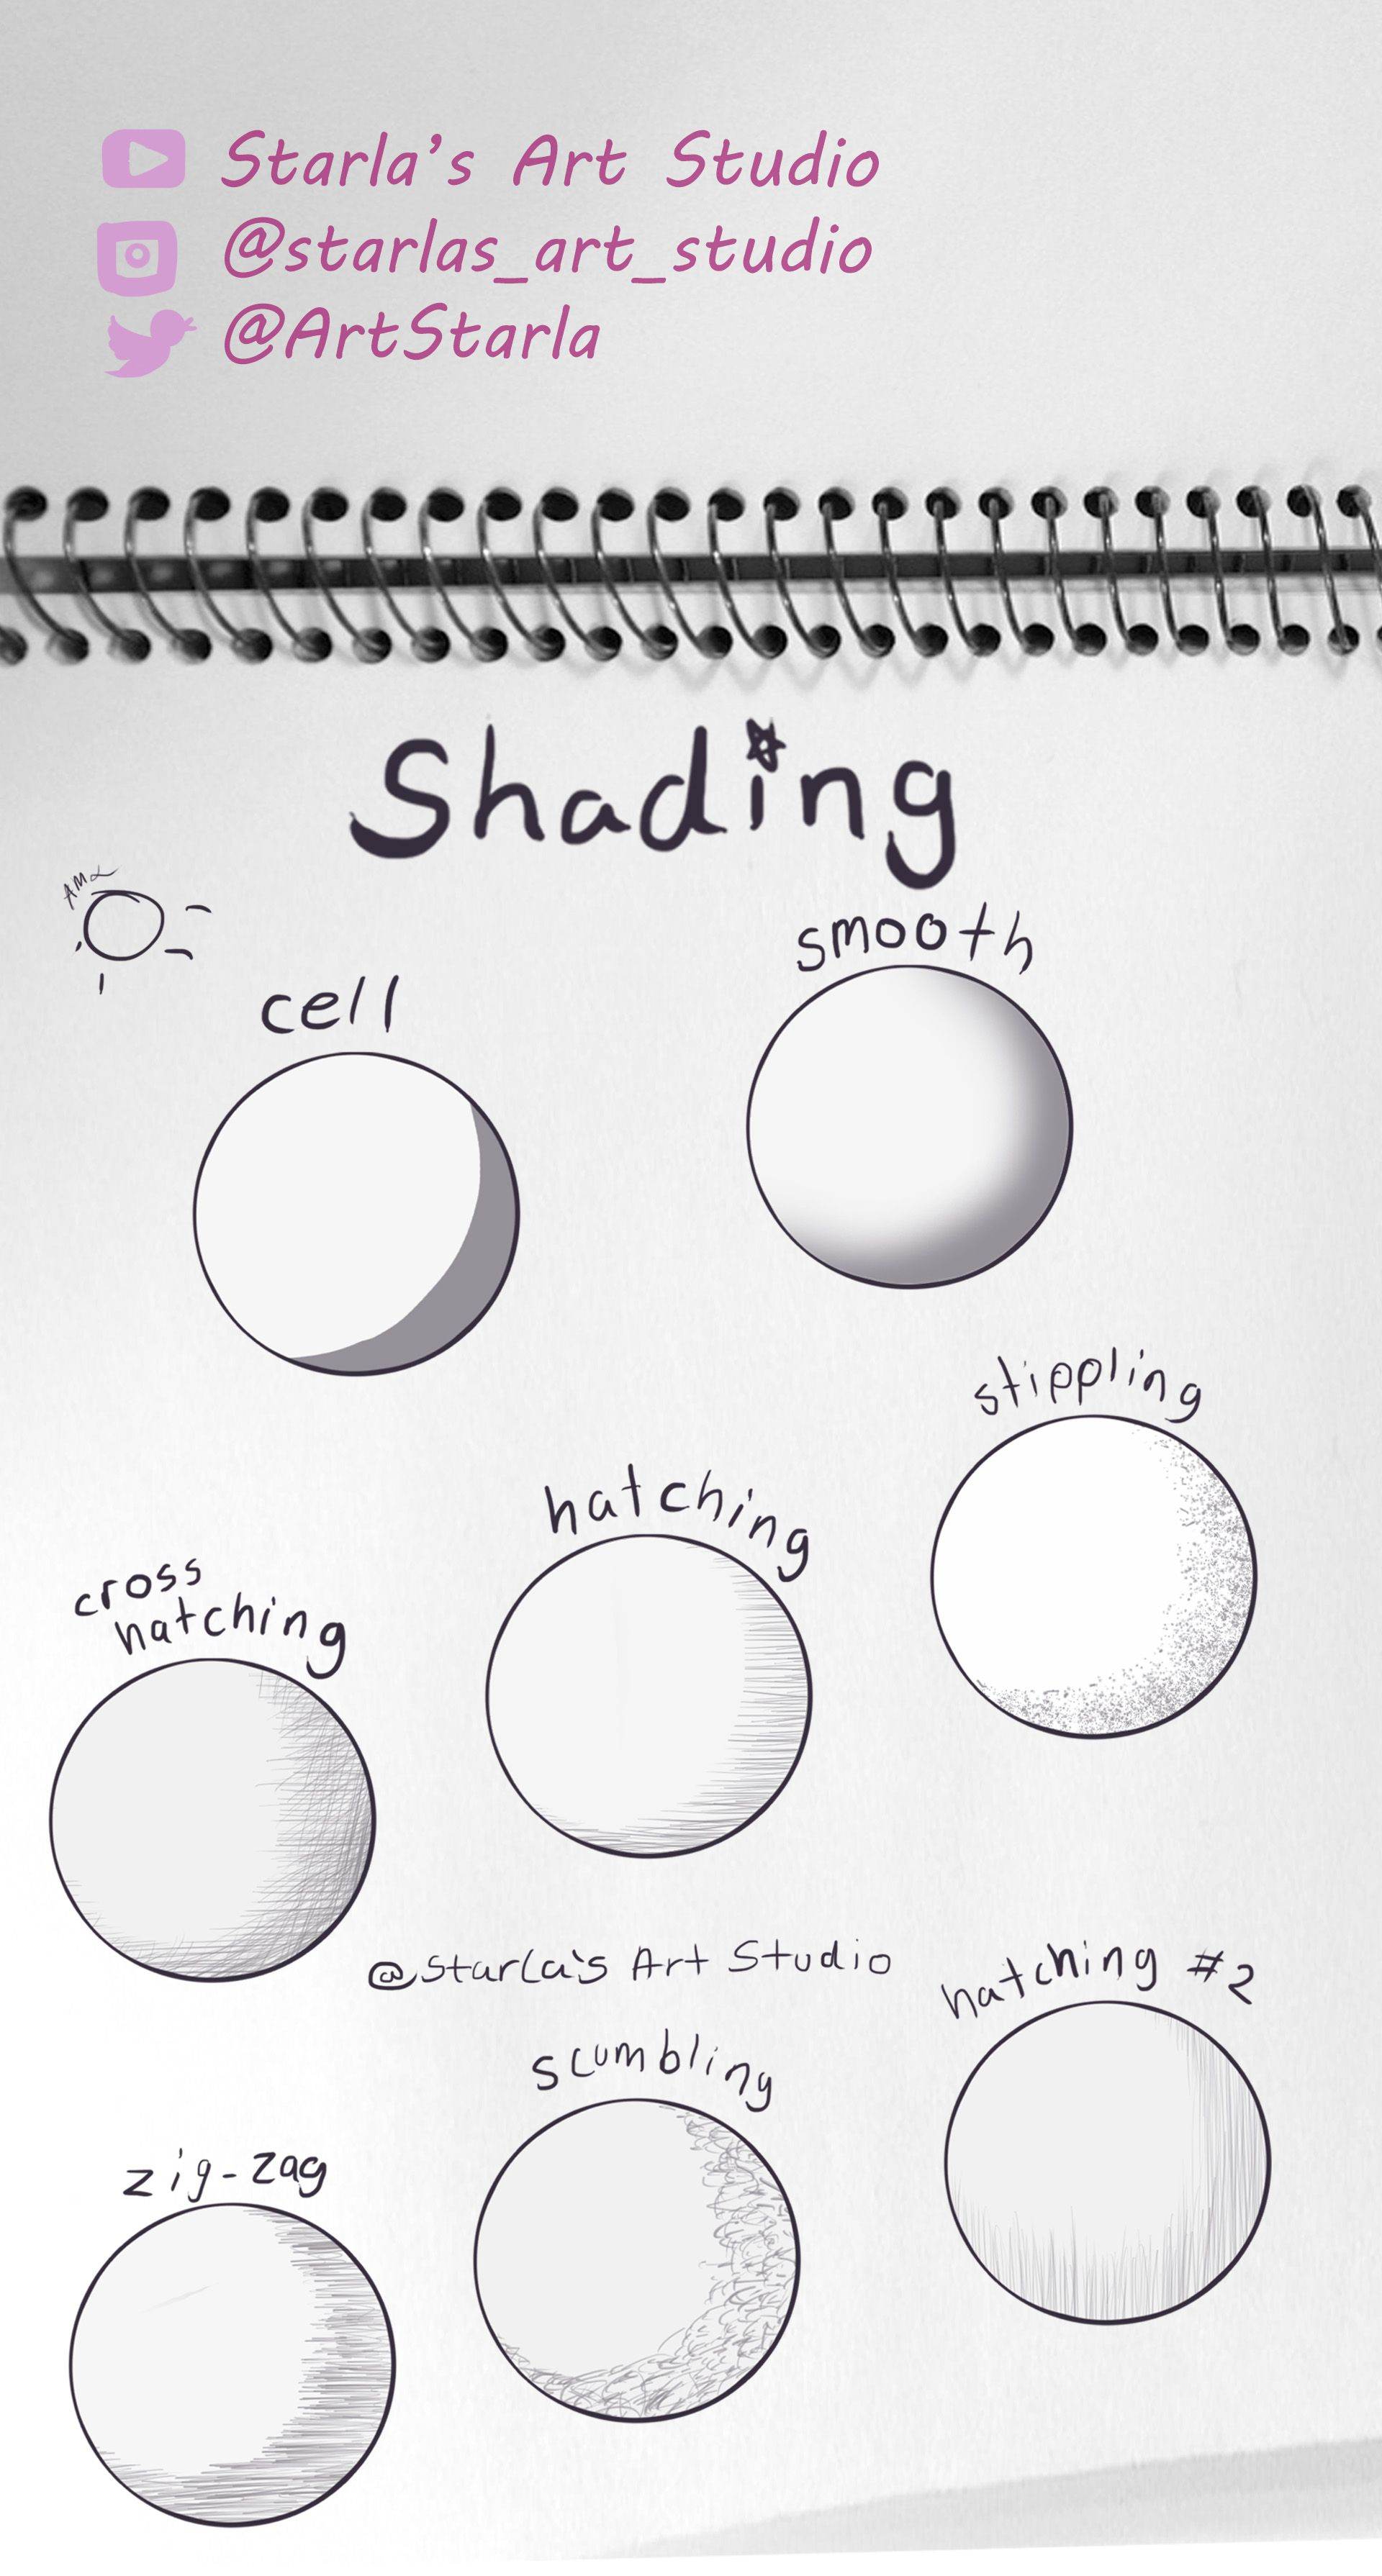 Shading types tutorial here is a drawing of a few different ways to shade a drawing examples given are cell smooth stippling hatching hatching 2